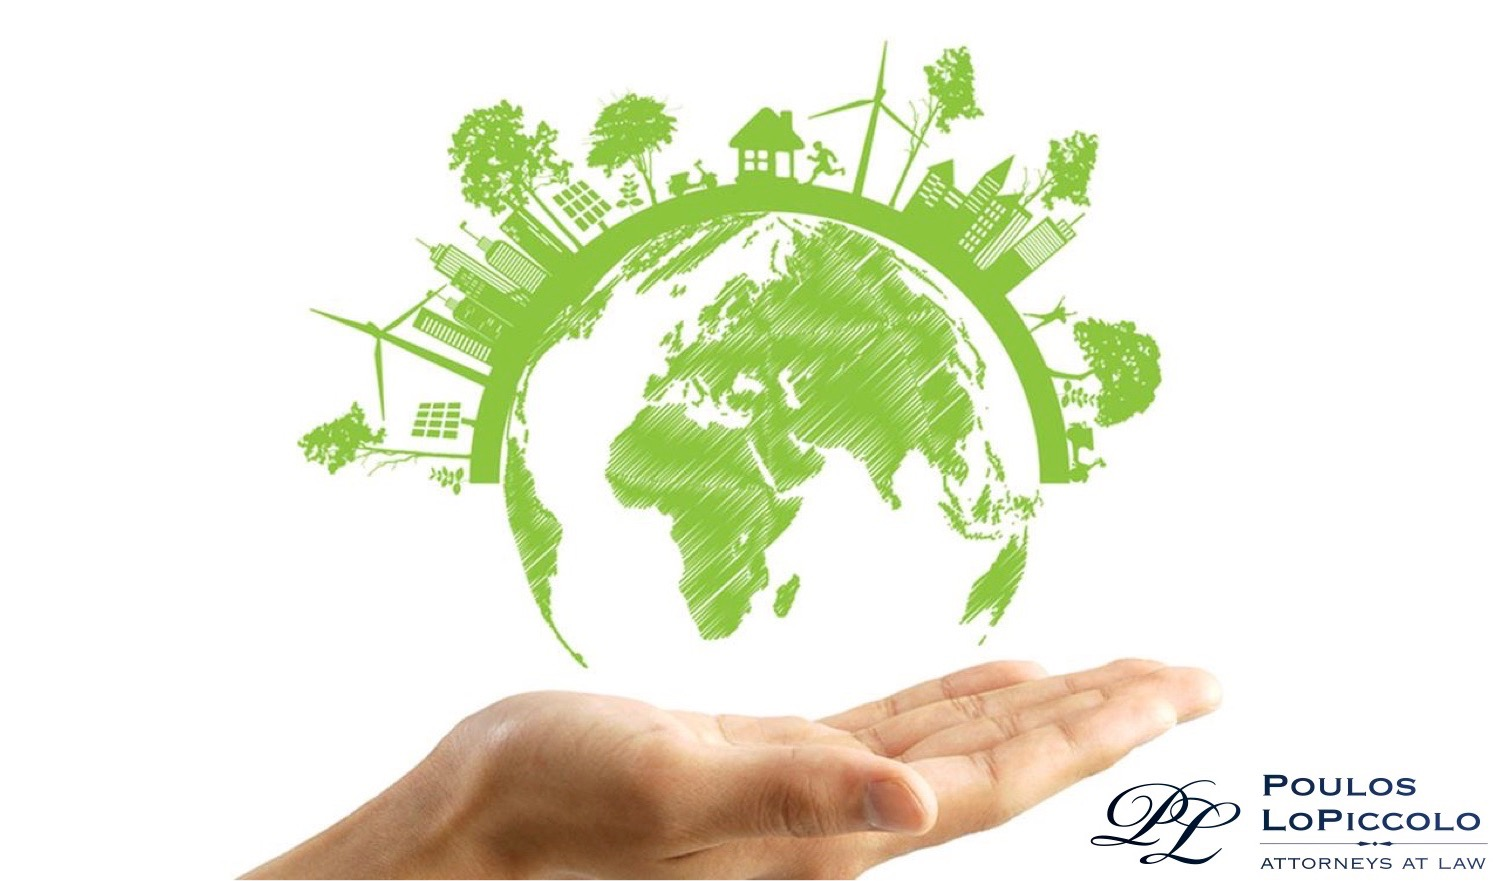 Make Your Home Greener On Earth Day And Everyday